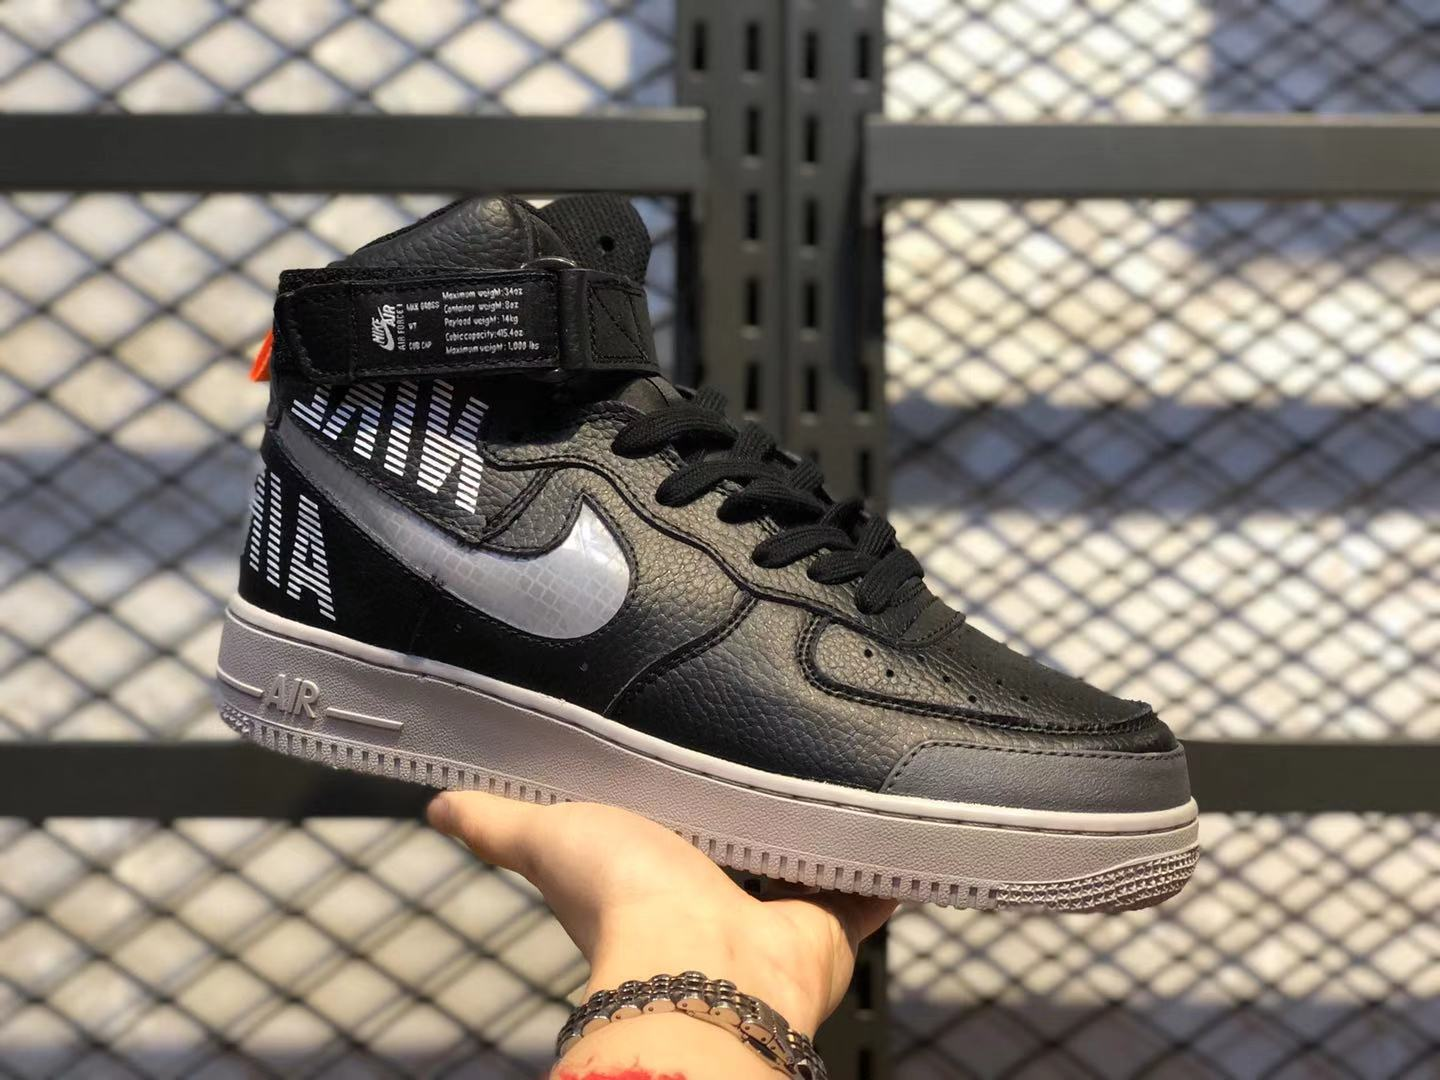 Nike Air Force 1 High Cool Grey/Wolf Grey-Pure Platinum CQ0449-001 For Sale